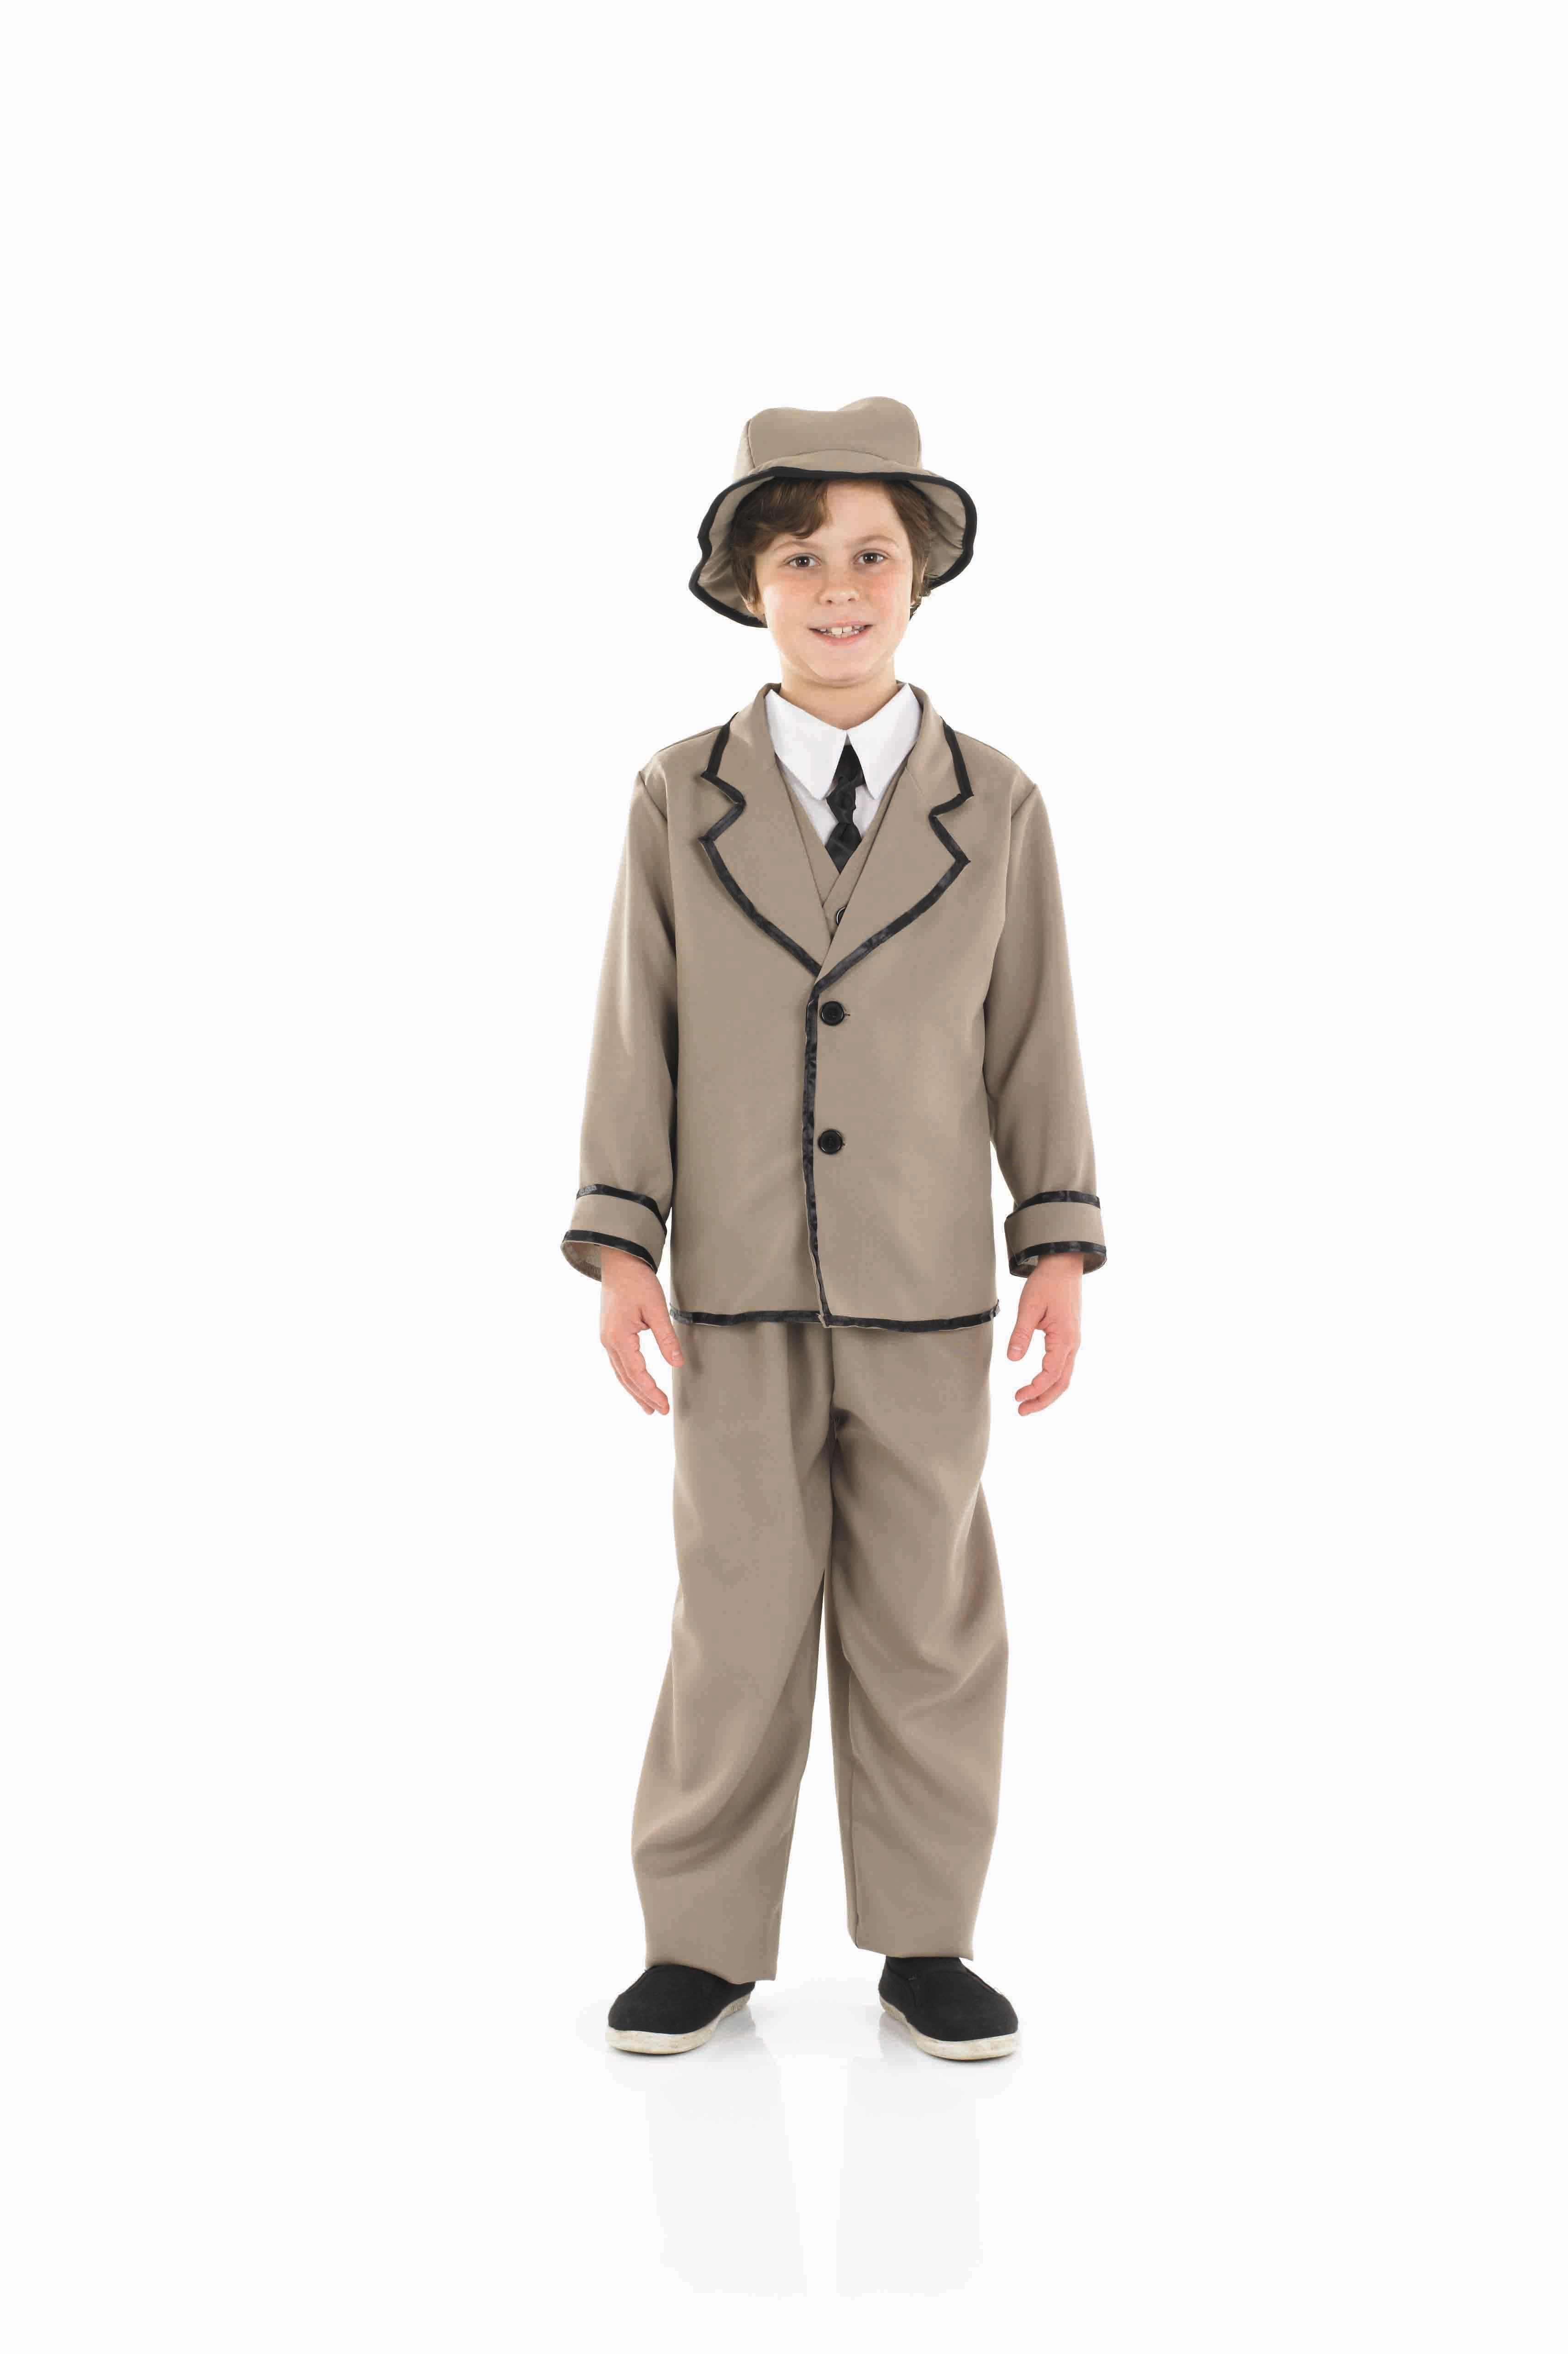 Boys Edwardian Boy Costume for Historic Book Day Fancy Dress Up Outfits